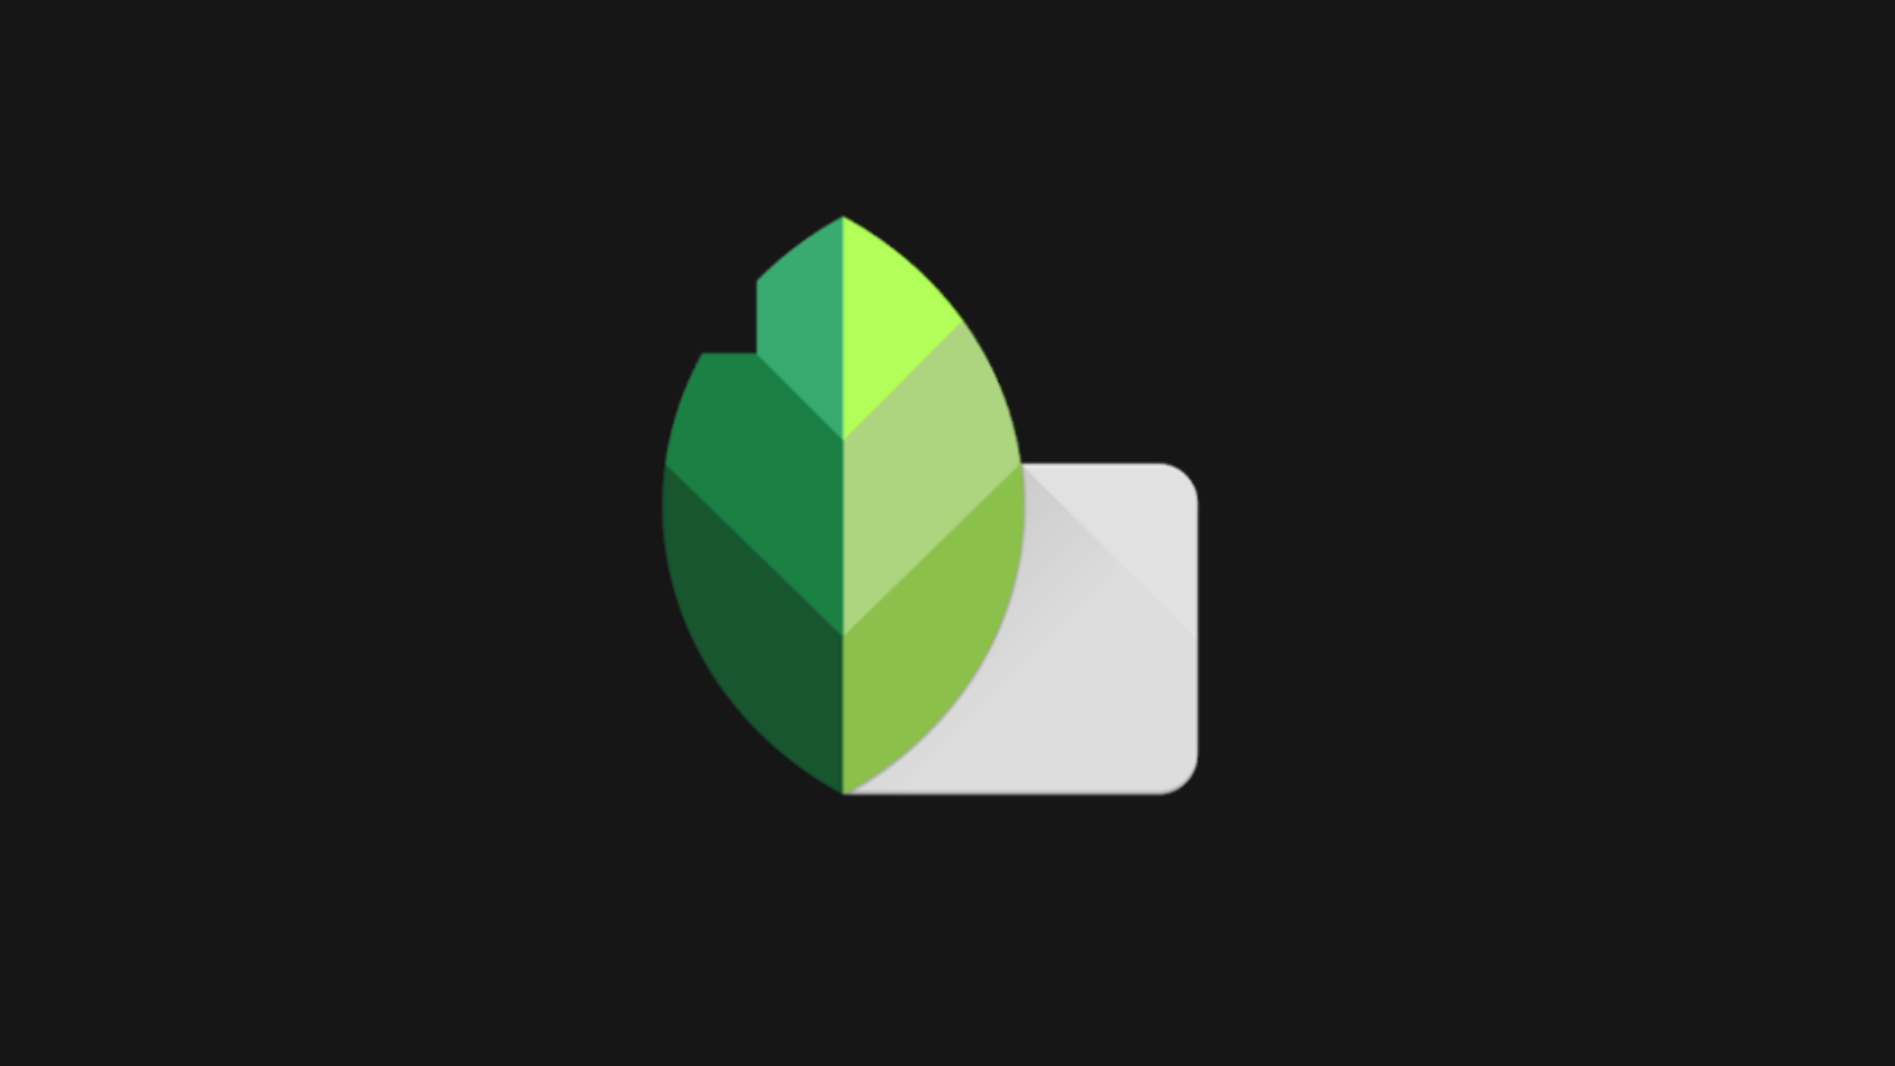 Snapseed v2 19 adds dark theme option [APK Download]